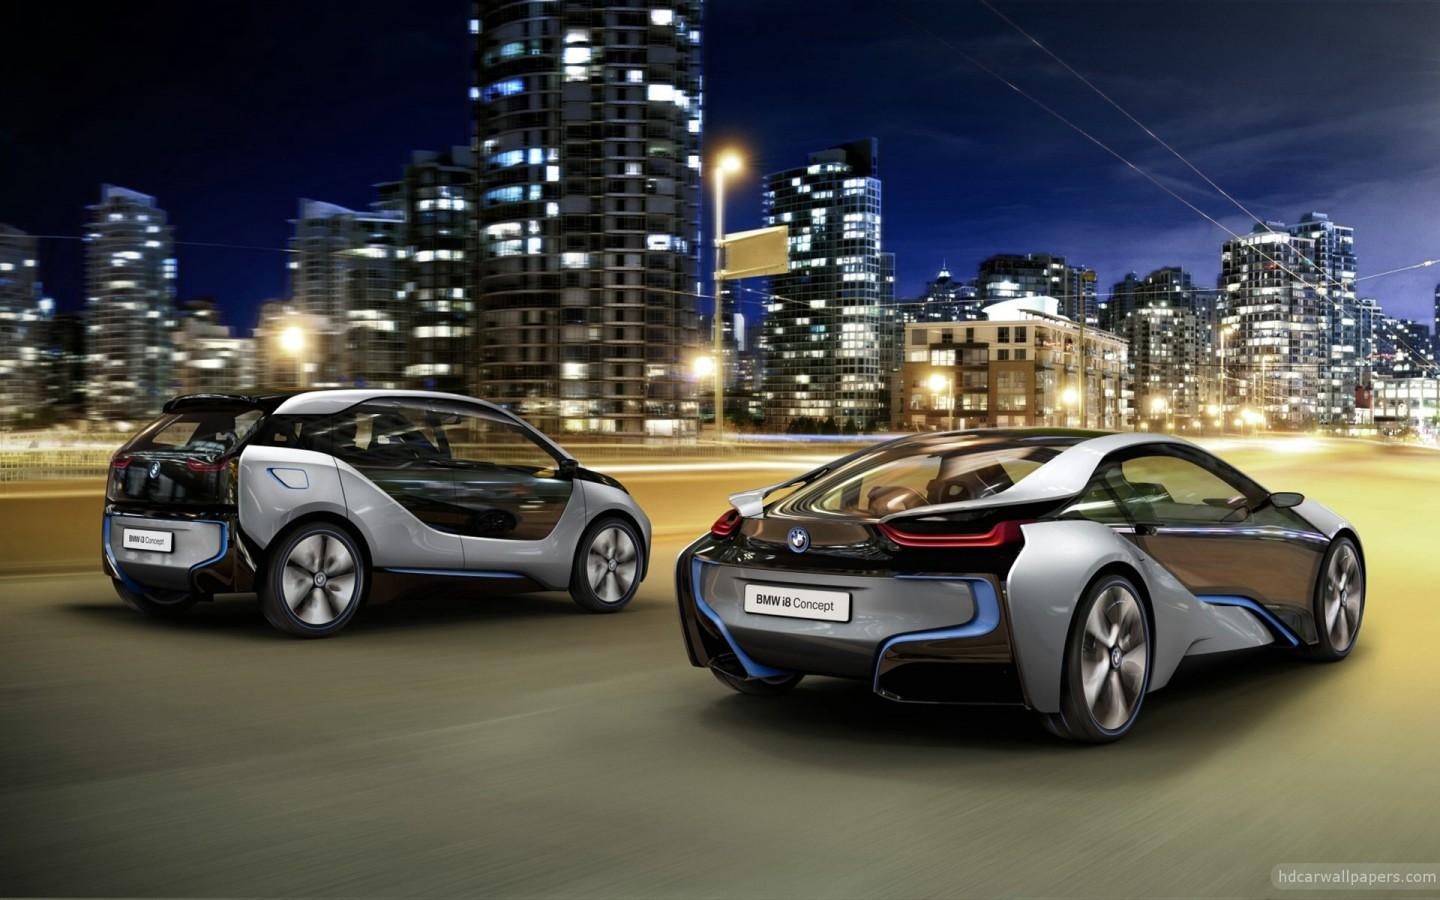 2012 BMW i8 & i3 Concept Cars 4 Wallpaper in 1440x900 Resolution